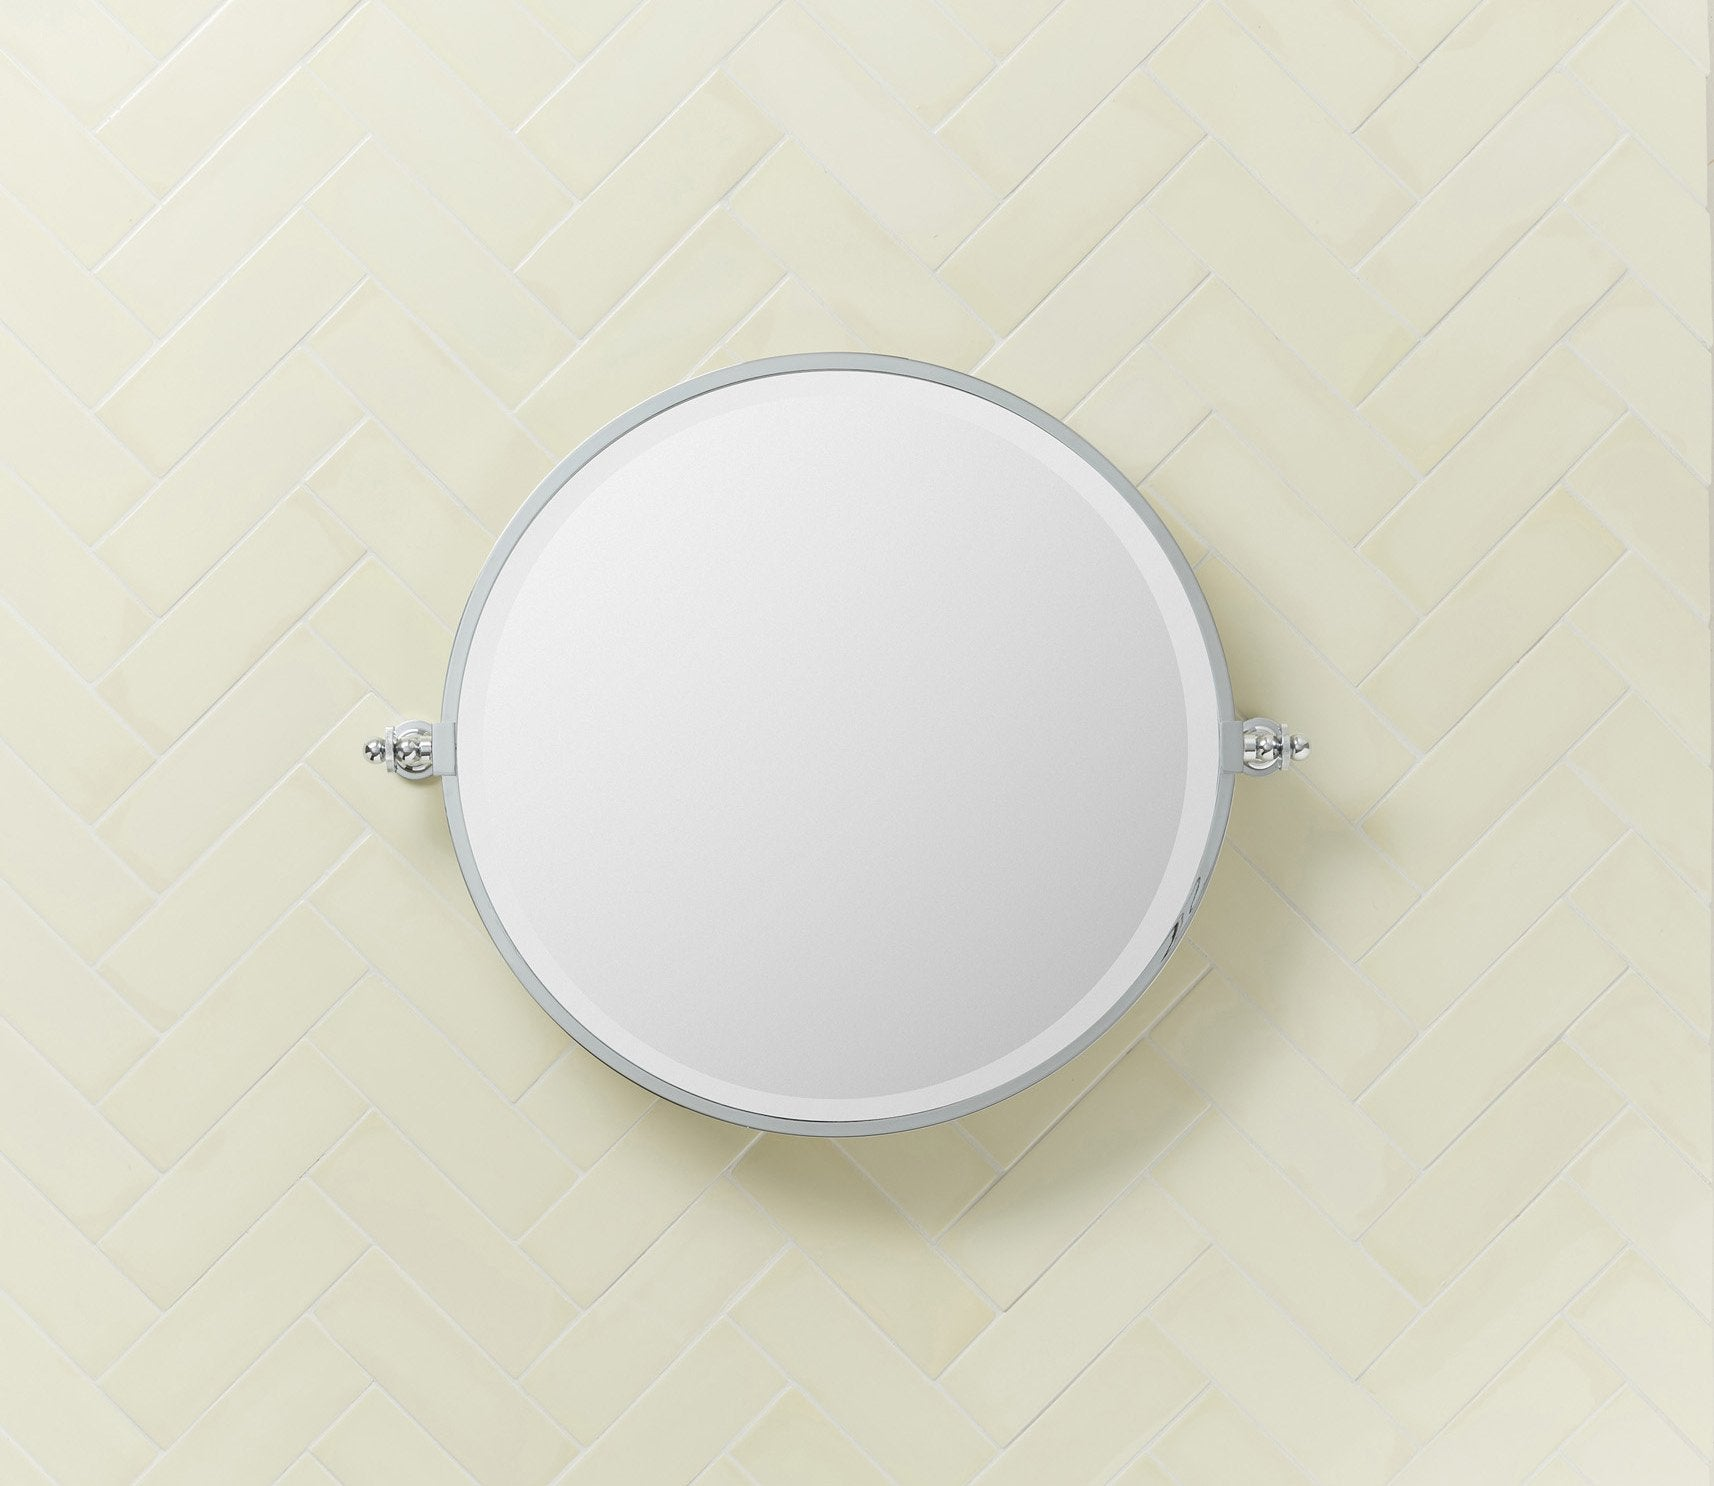 Hanbury Round Mirror Product Image 2